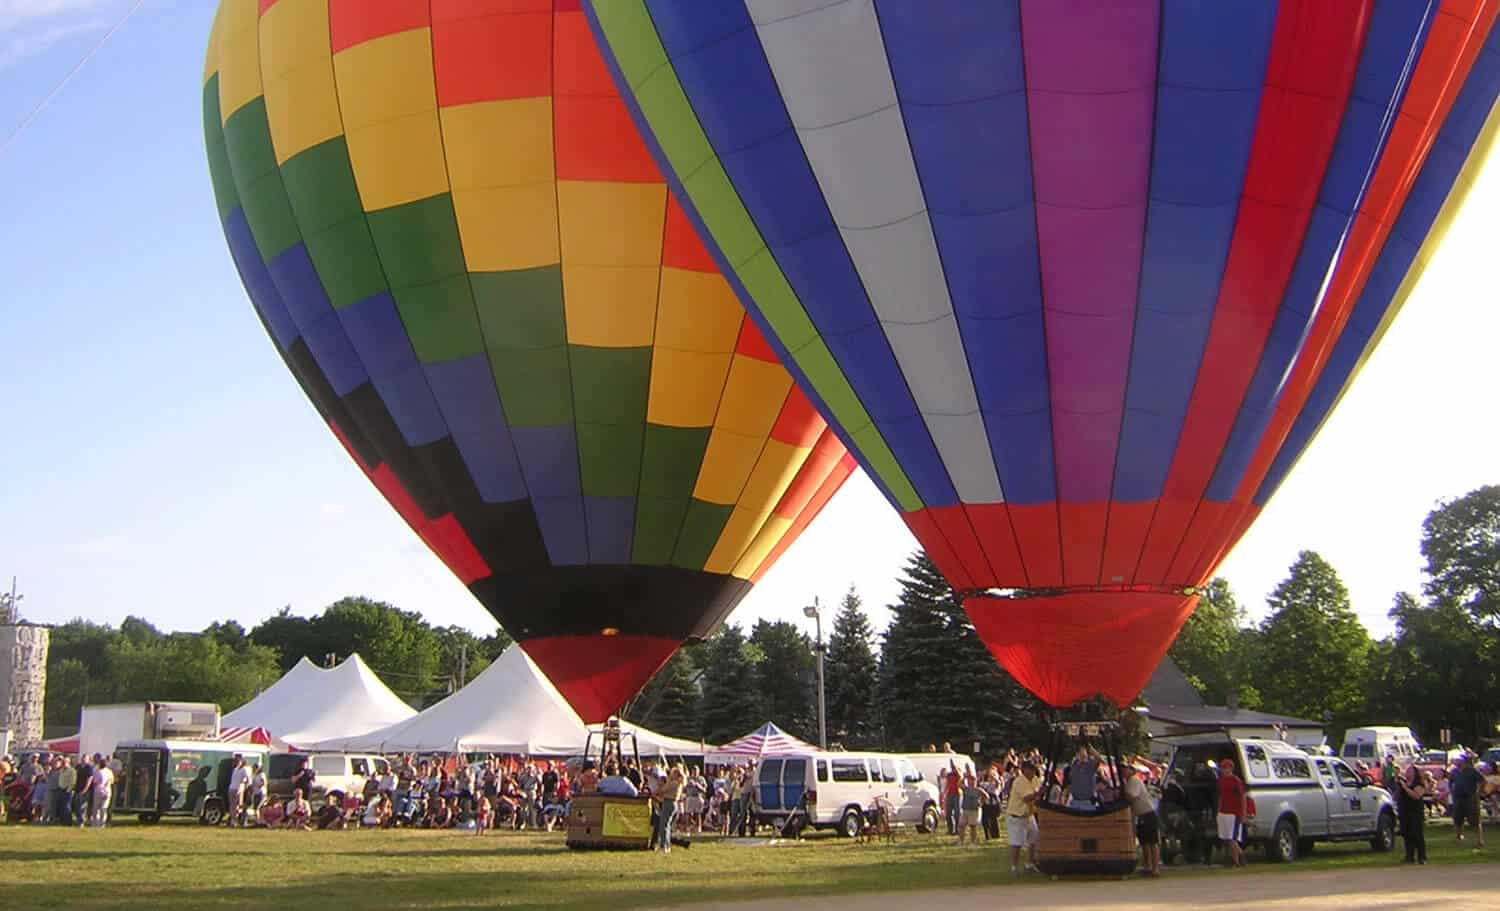 Two hot air balloons await liftoff at a fair